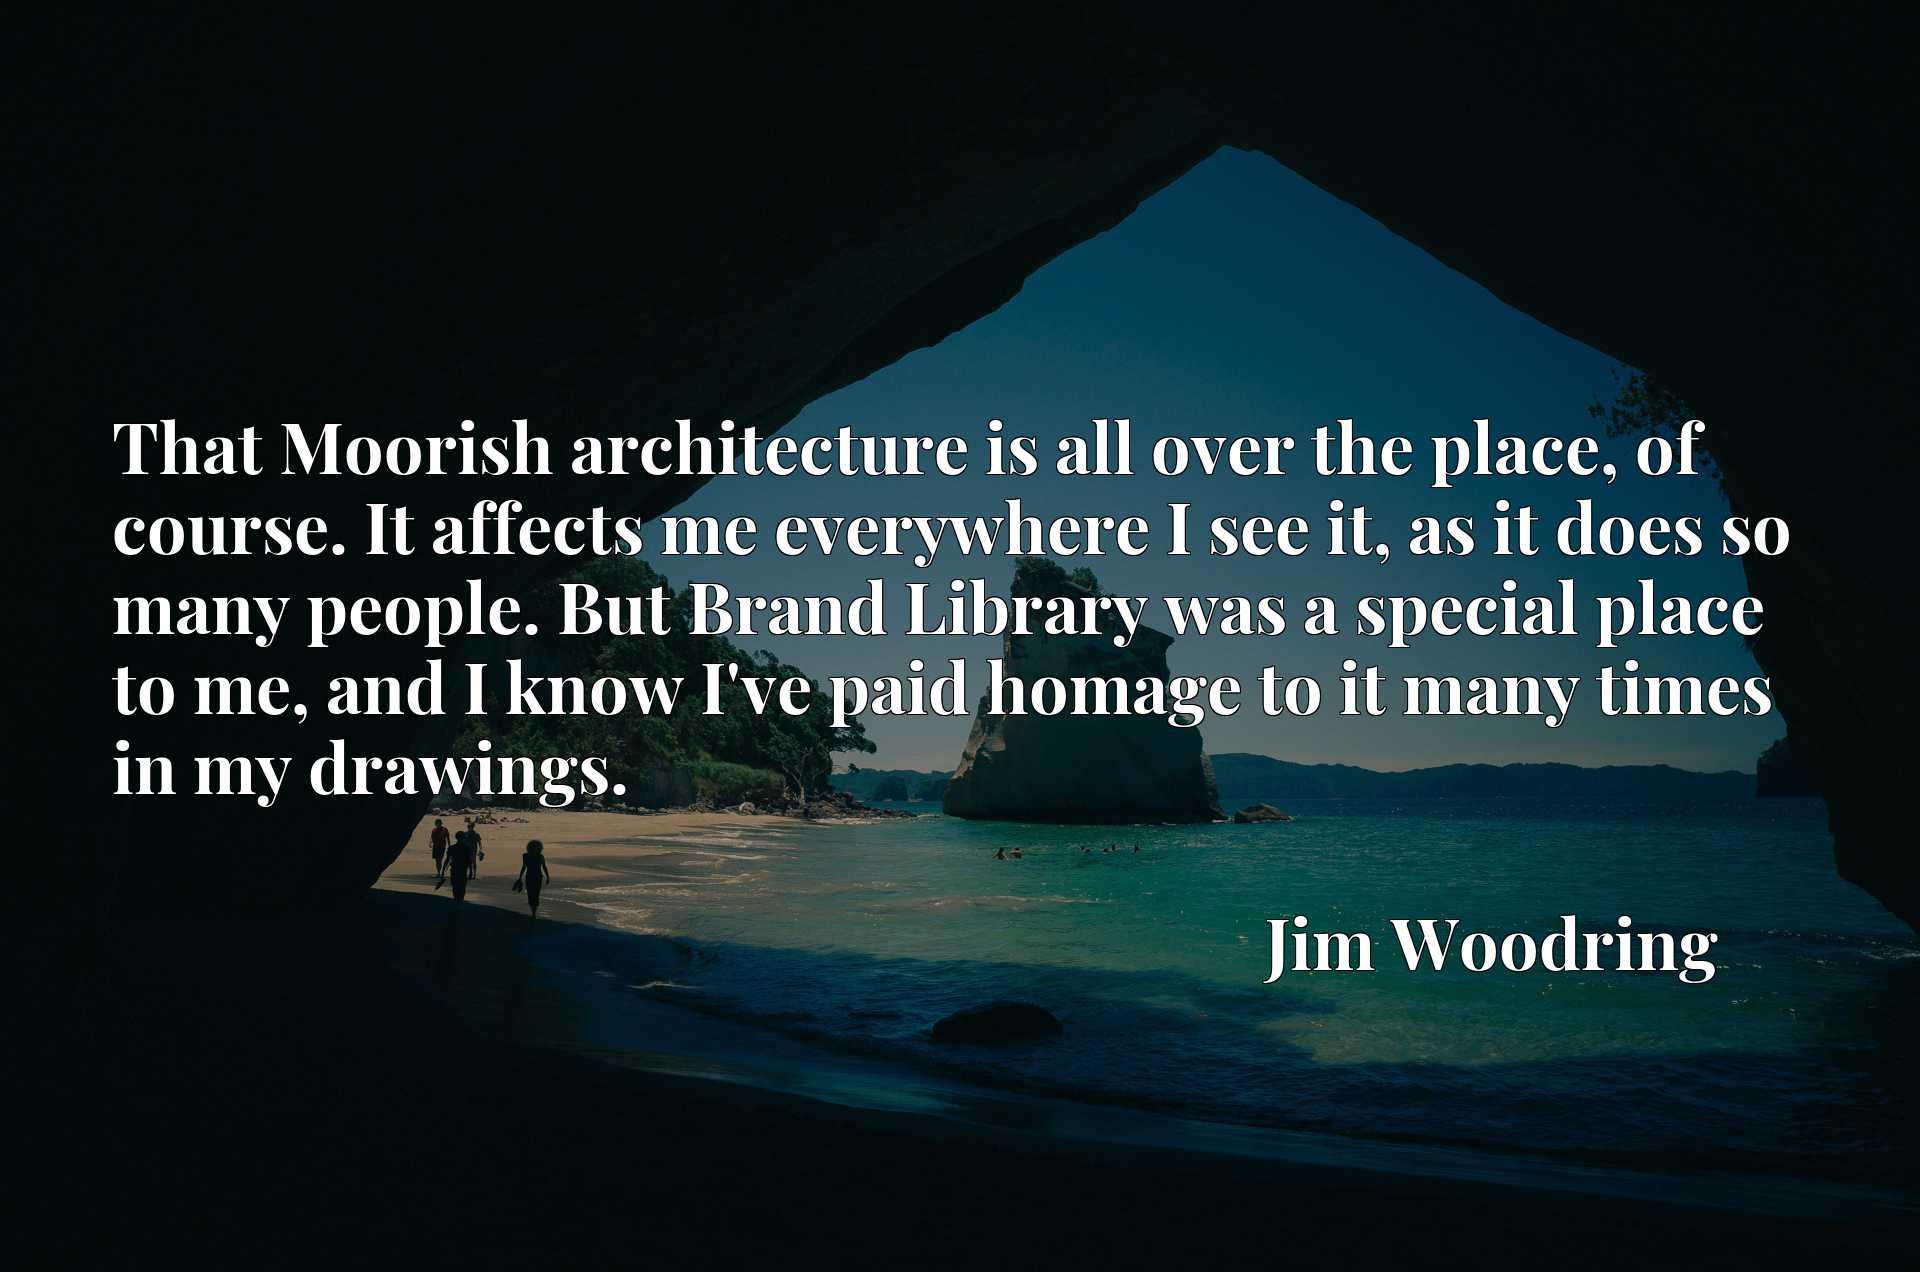 That Moorish architecture is all over the place, of course. It affects me everywhere I see it, as it does so many people. But Brand Library was a special place to me, and I know I've paid homage to it many times in my drawings.